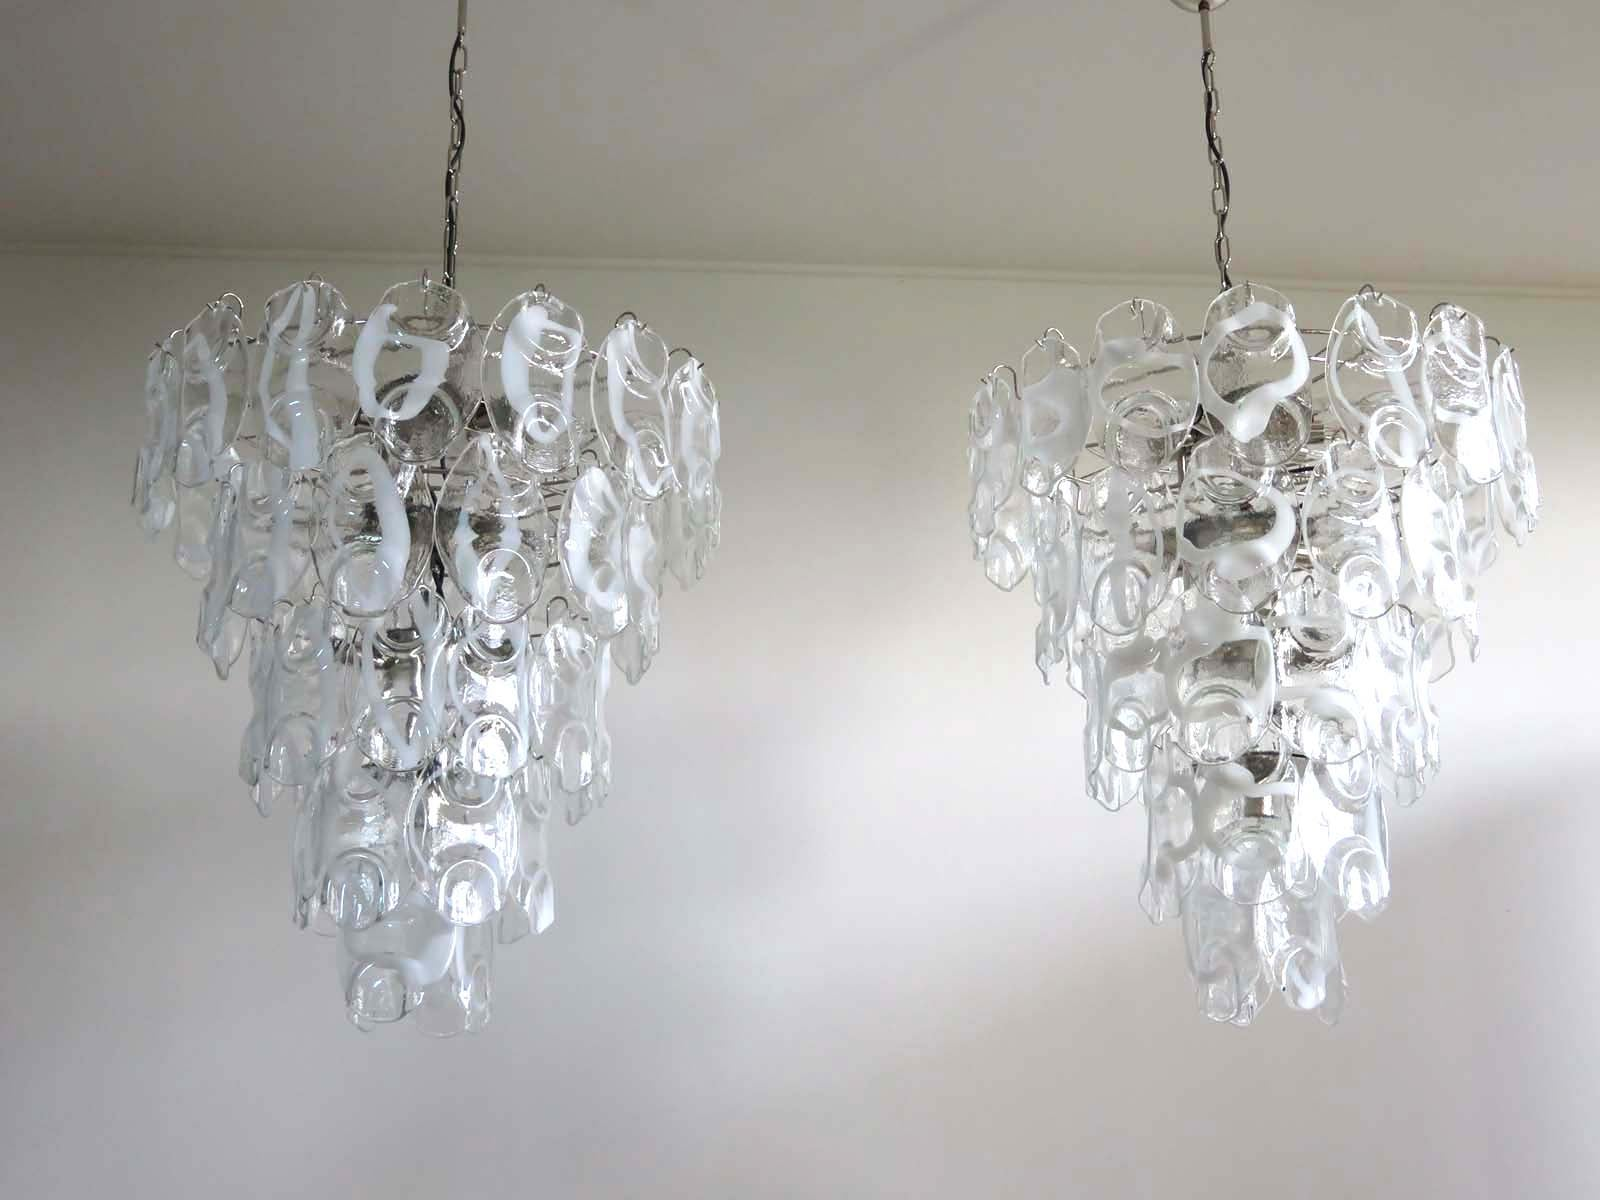 Pair of huge vintage italian murano chandelier lamp by vistosi 50 pair of huge vintage italian murano chandelier lamp by vistosi 50 glasses at 1stdibs aloadofball Choice Image